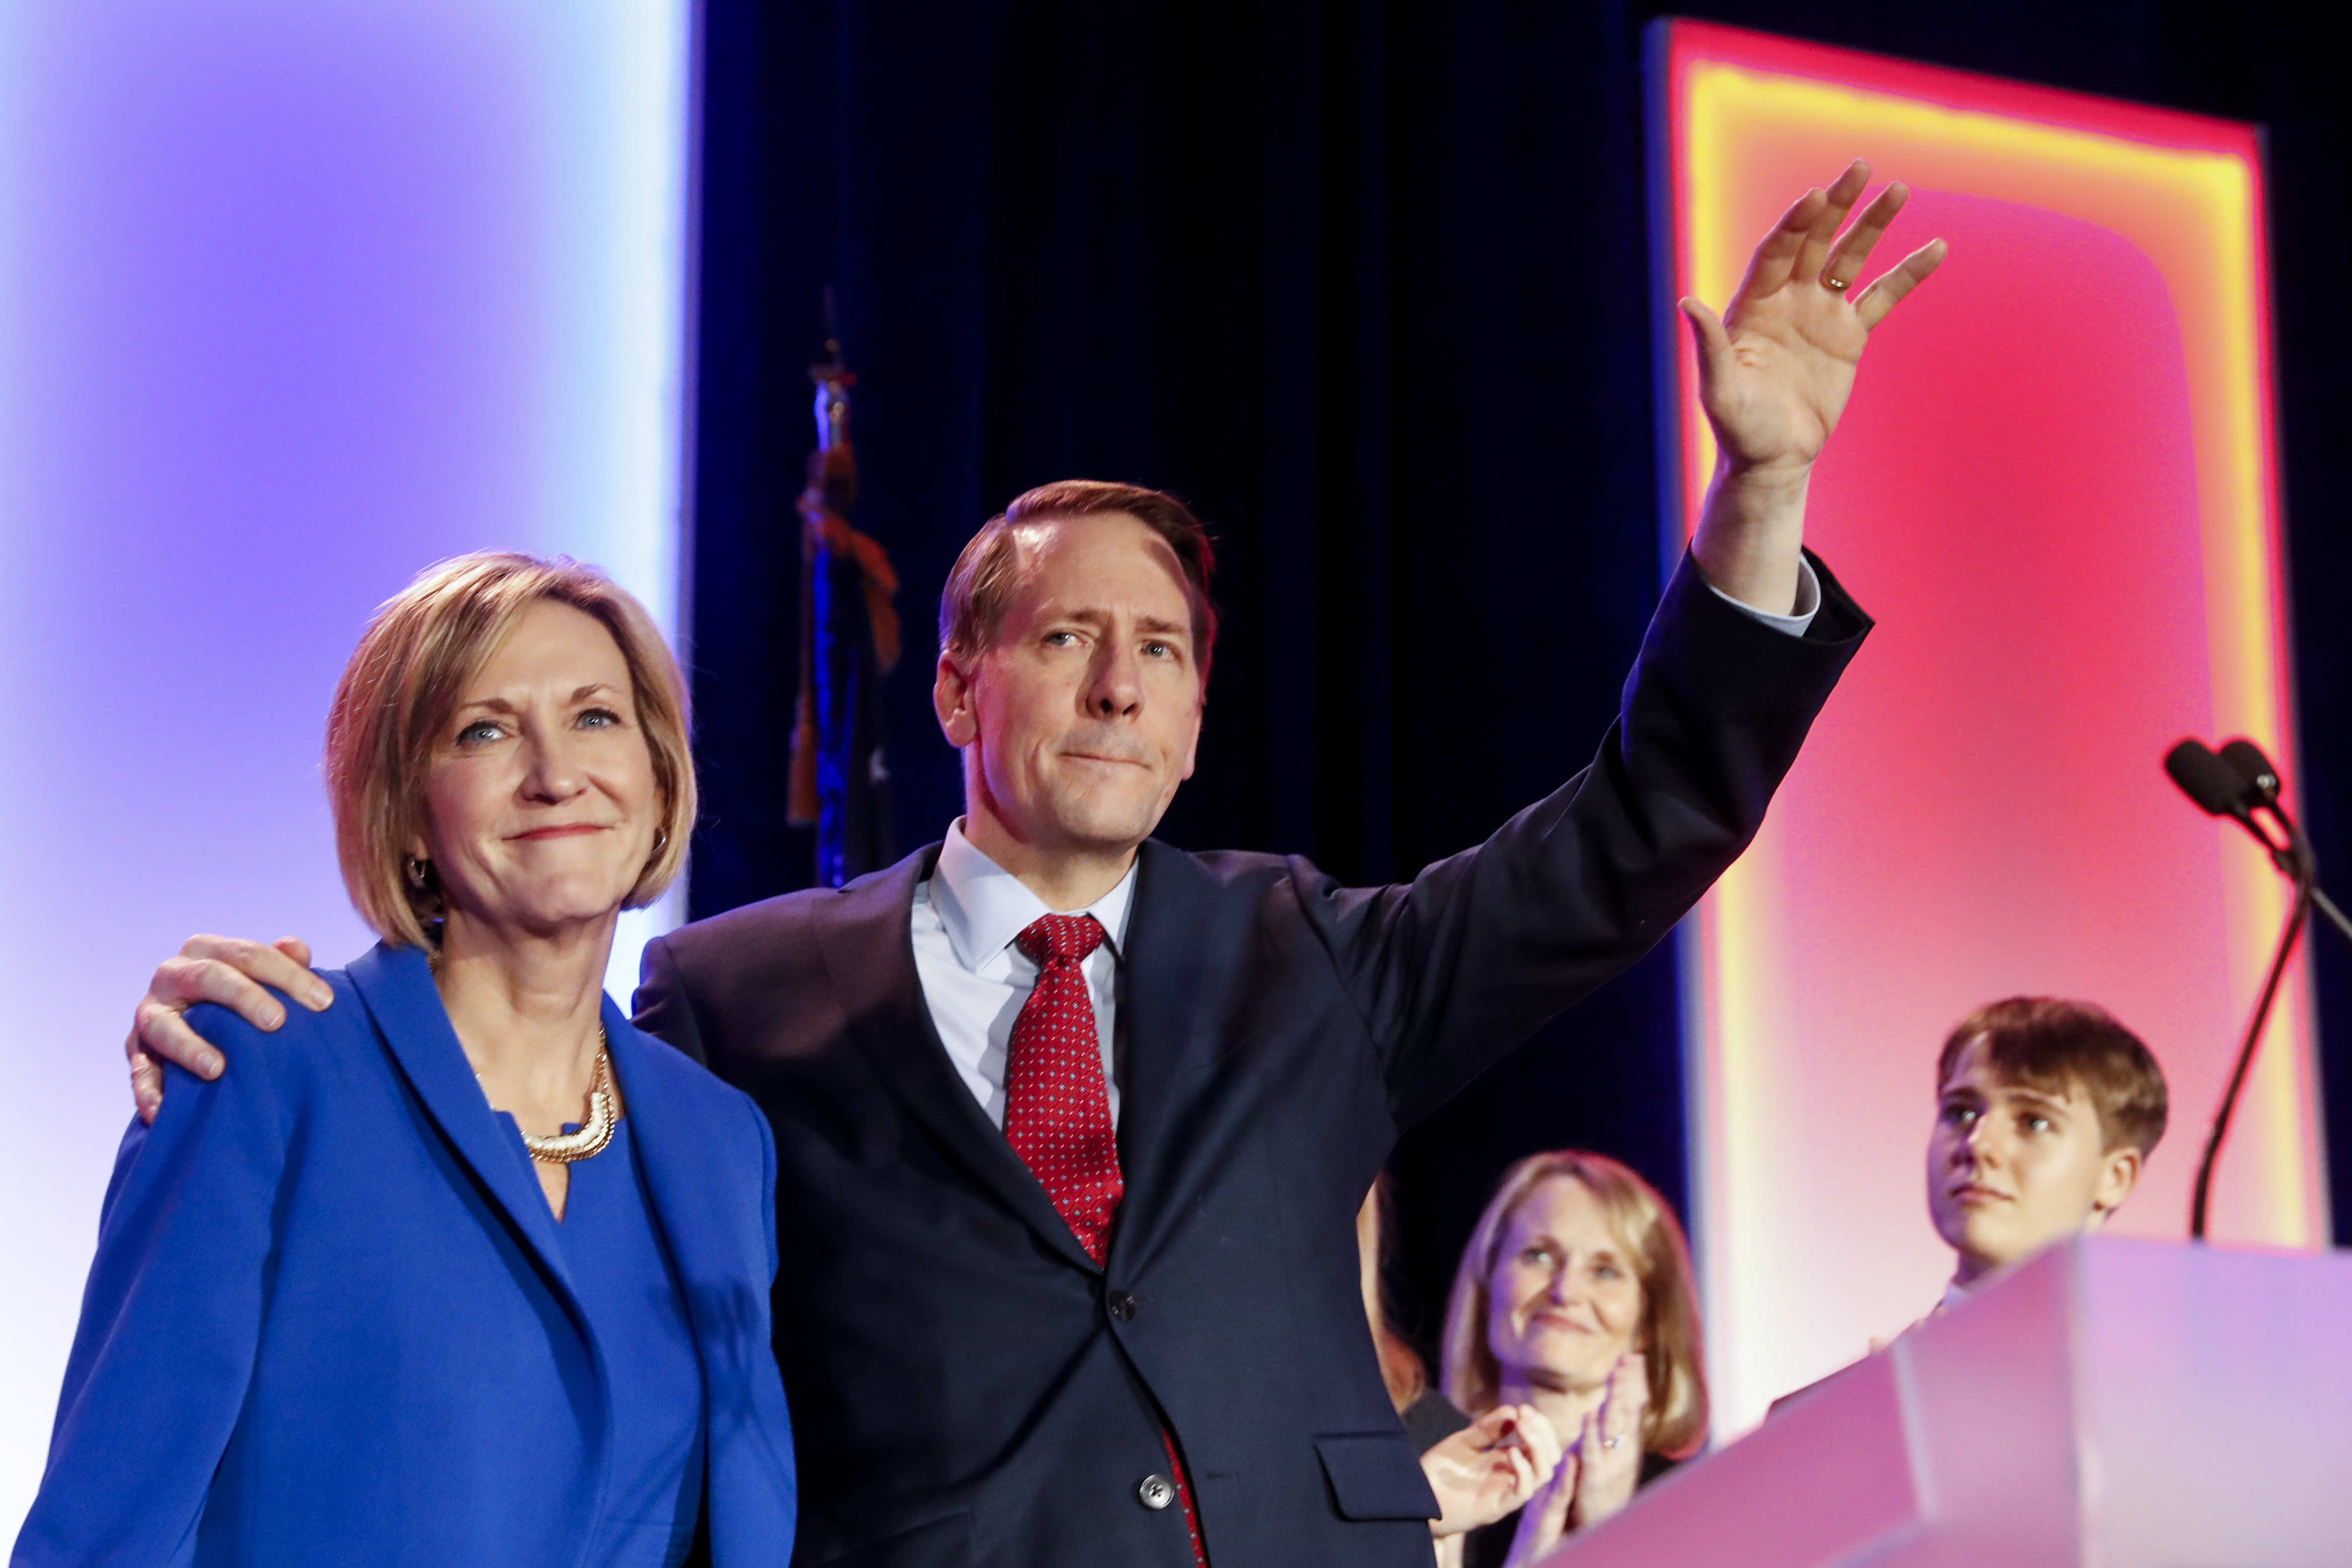 Ohio Democratic gubernatorial candidate Richard Cordray, right, waves to the crowd alongside his running mate Betty Sutton, left, after conceding defeat to Ohio Republican gubernatorial candidate Mike DeWine during the Ohio Democratic Party election night watch party, Tuesday in Columbus, Ohio. (AP Photo/John Minchillo)